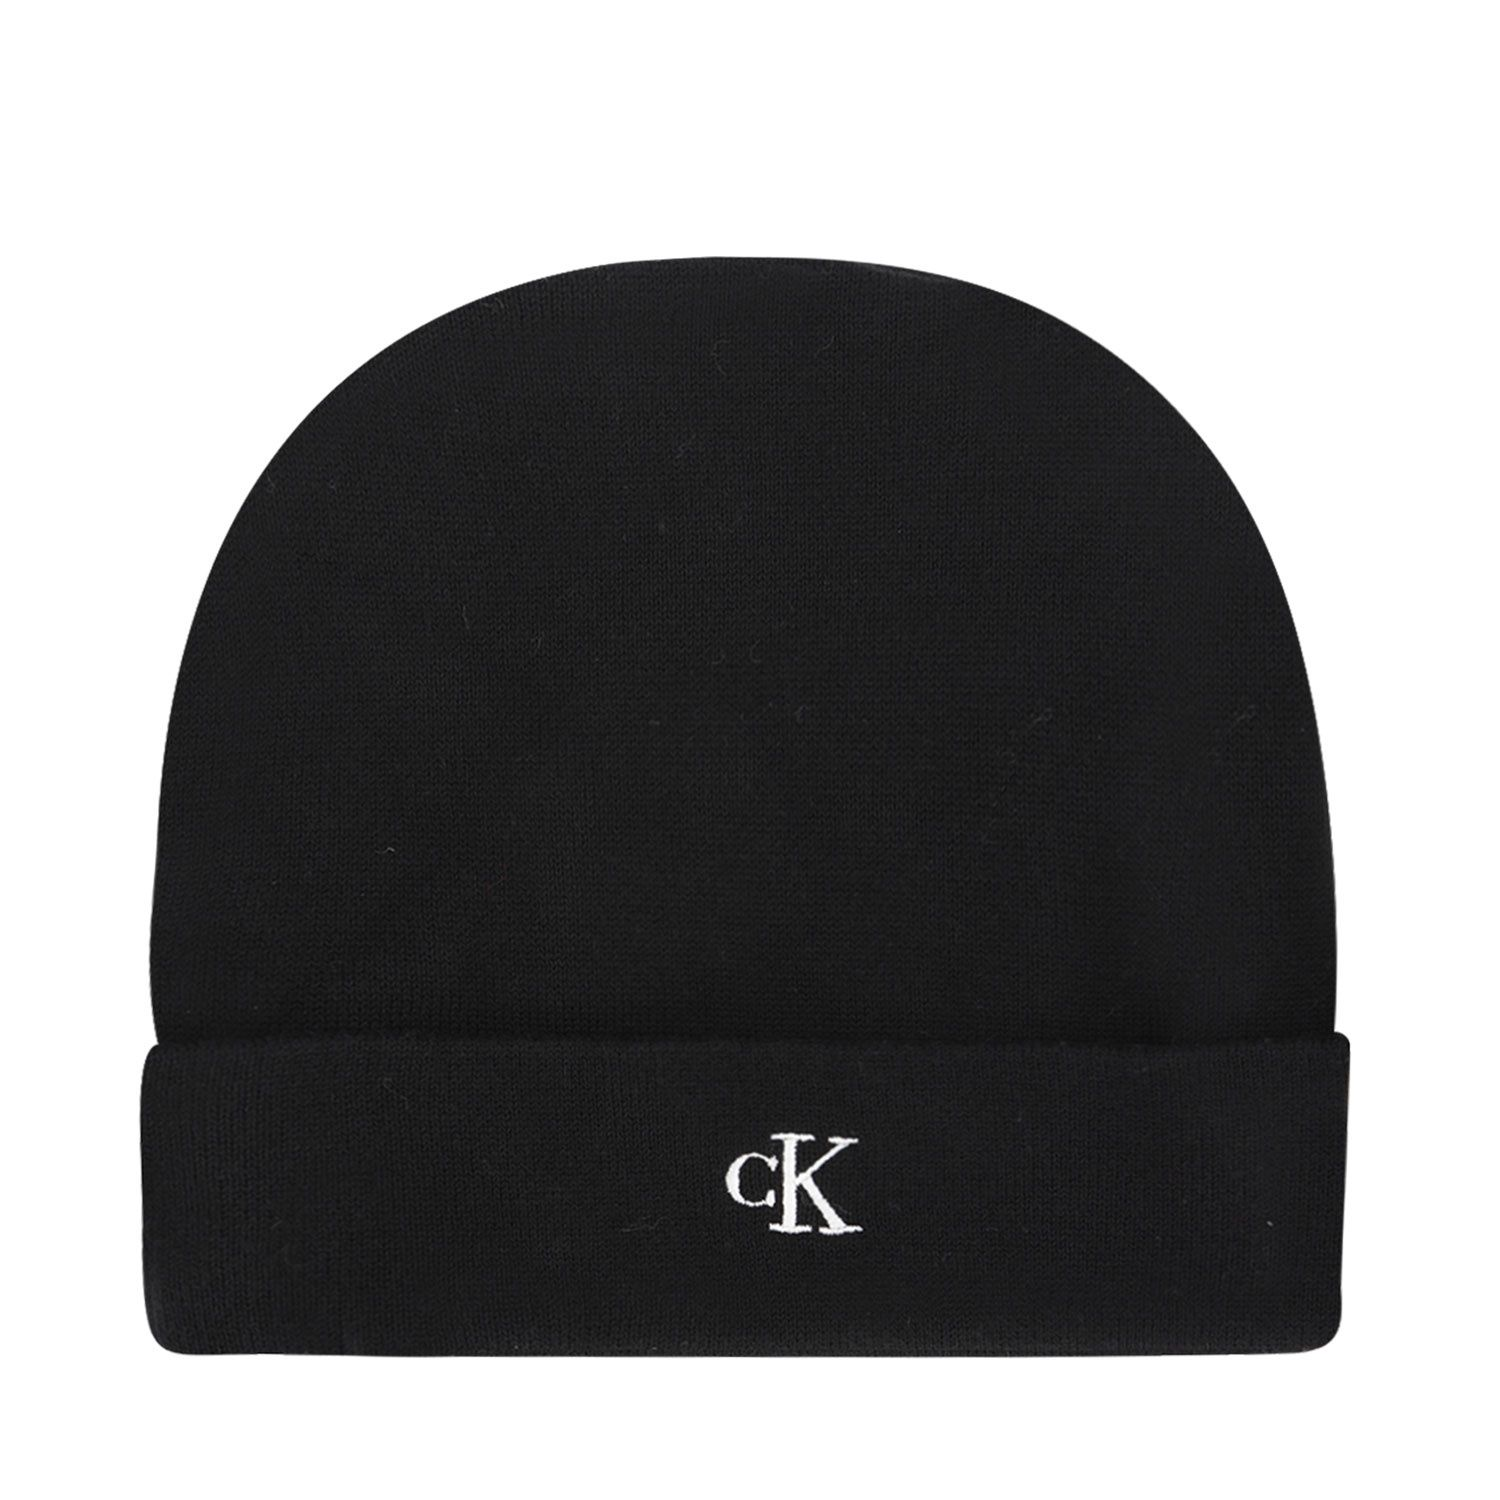 Picture of Calvin Klein IU0IU00145 kids hat black